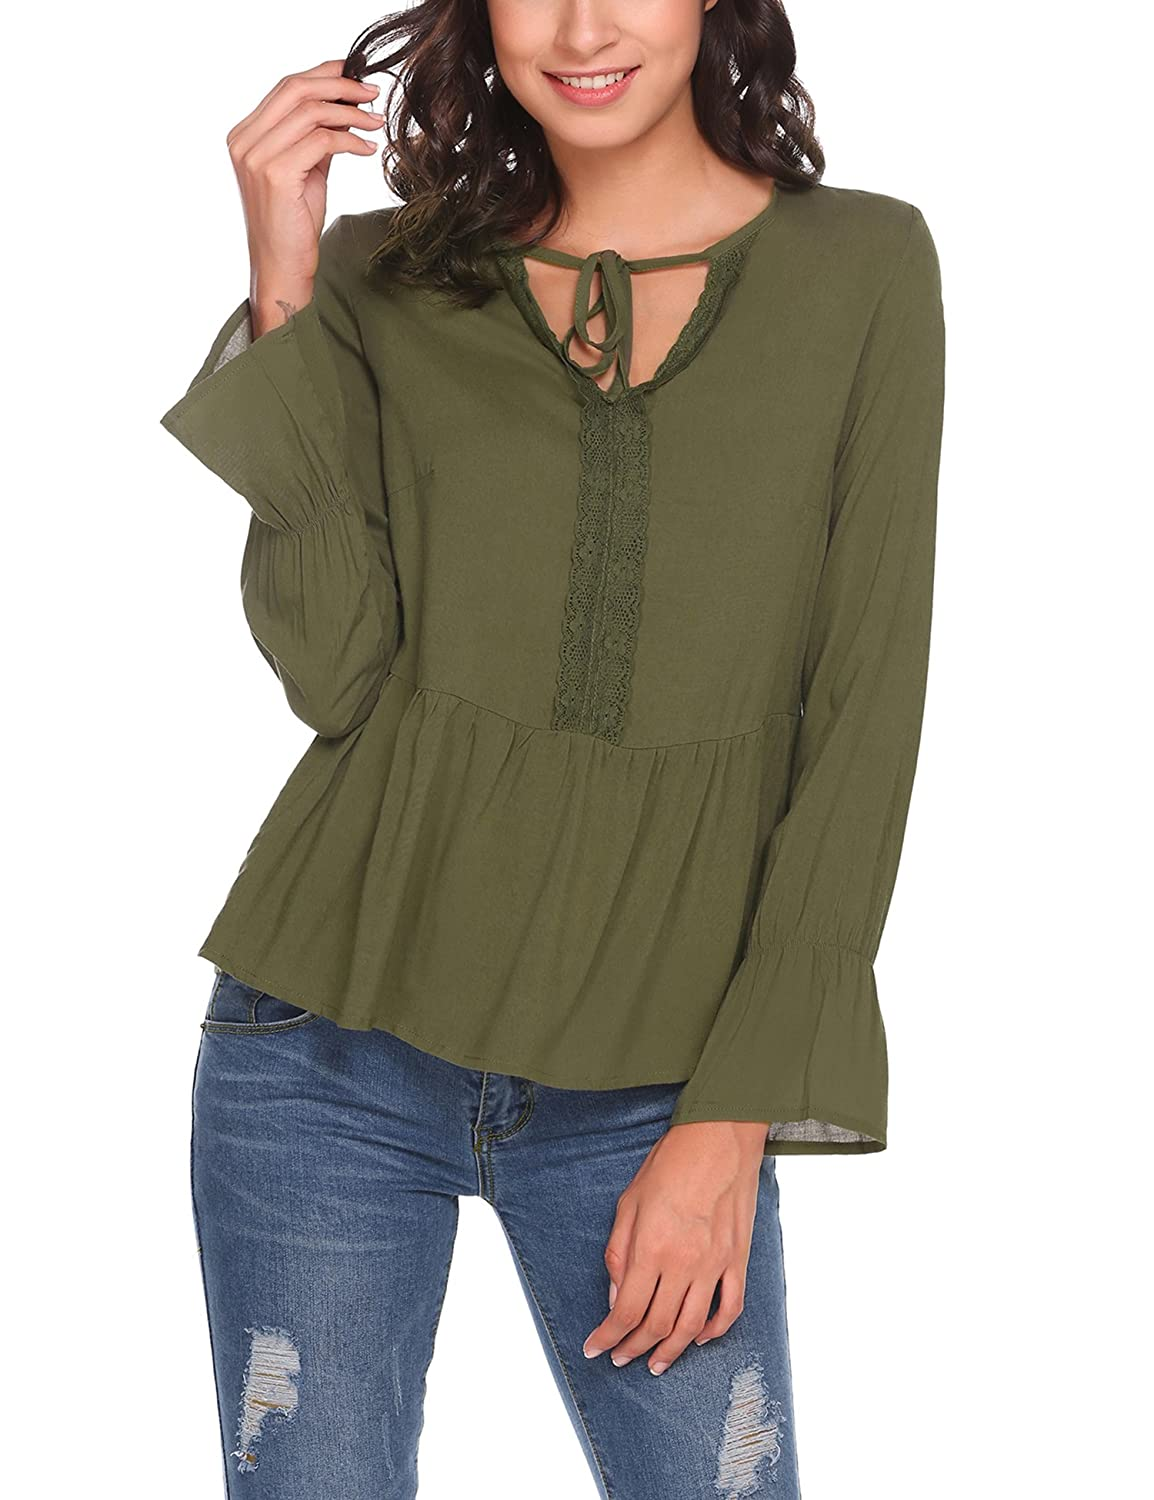 Meaneor Casual Women's Long Sleeve V Neck Lace up Shirt Ruffled Peplum Top